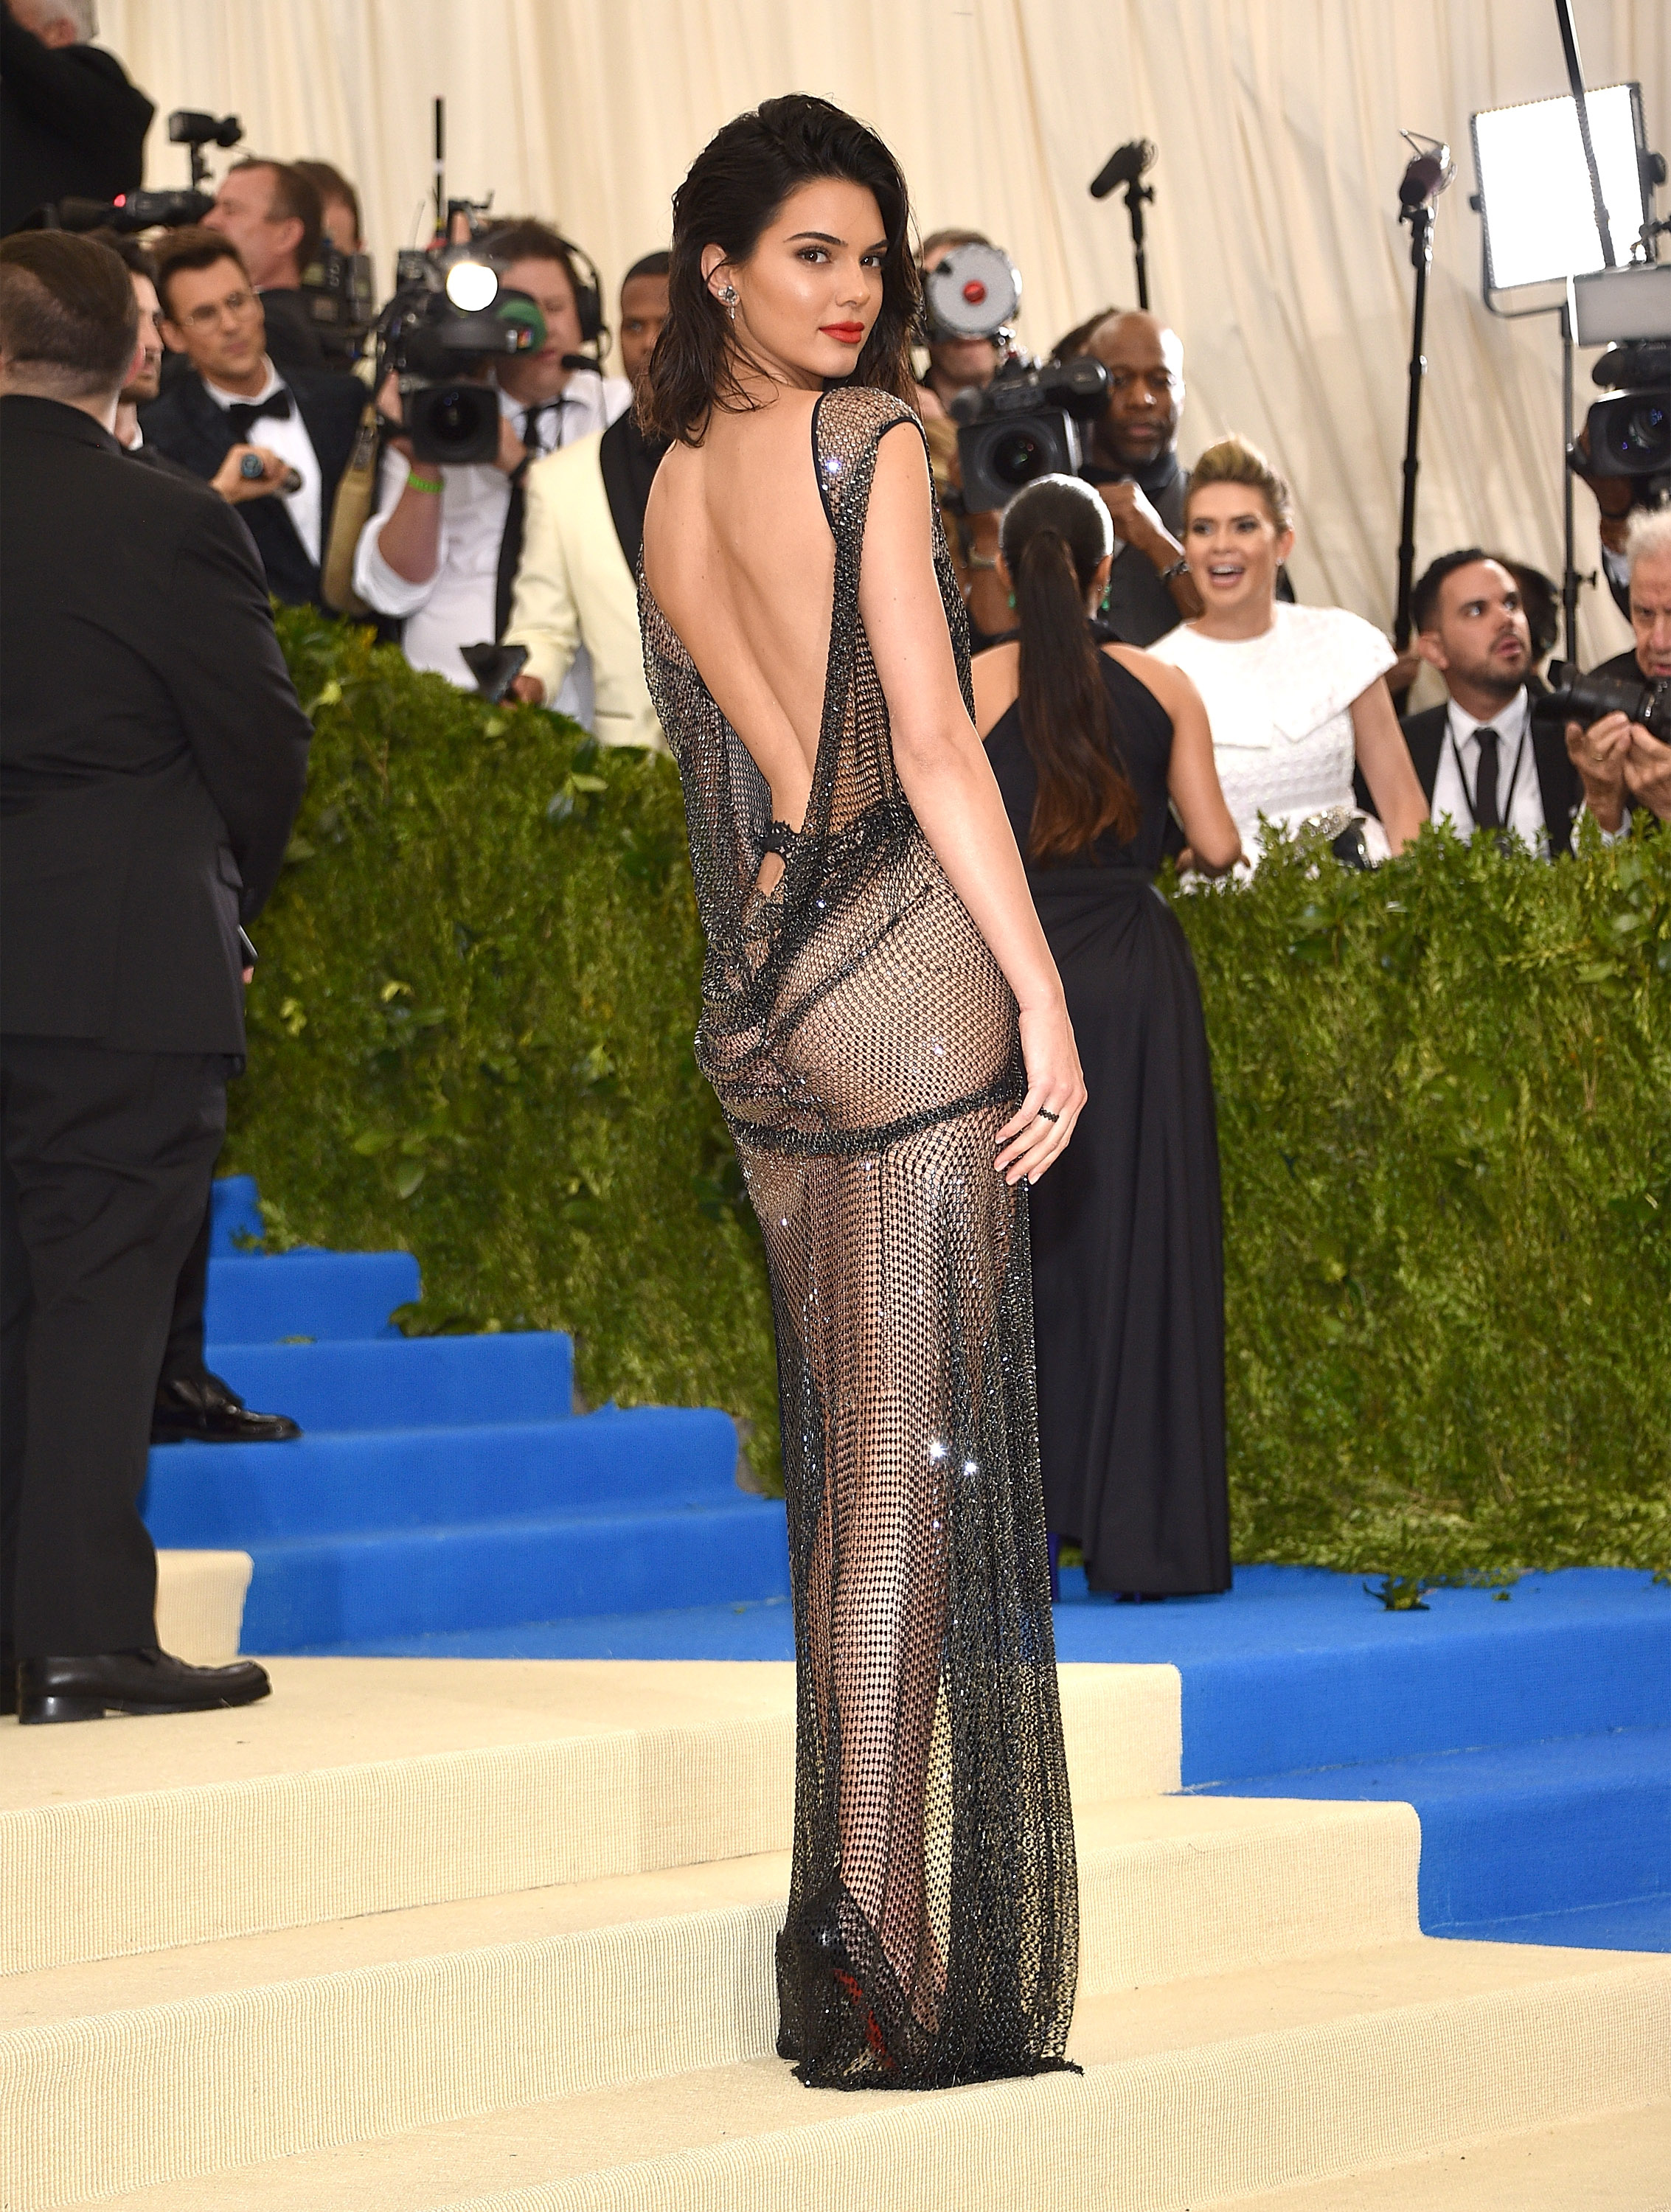 MET GALA 2017: All About Kendall Jenner's Gown